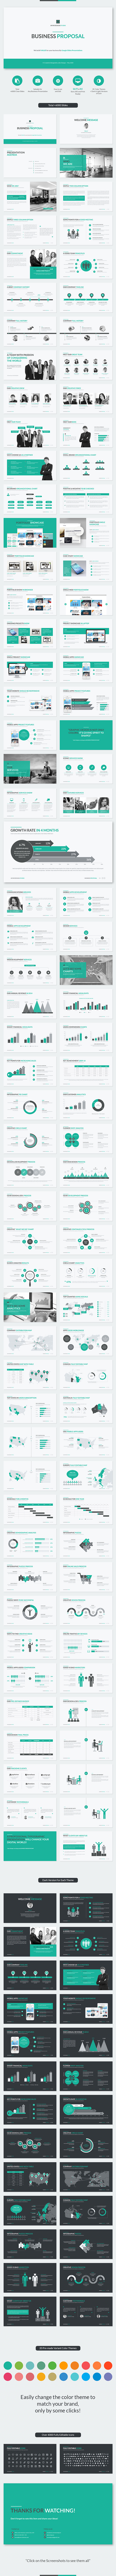 Business Proposal Google Slides Template - Google Slides Presentation Templates